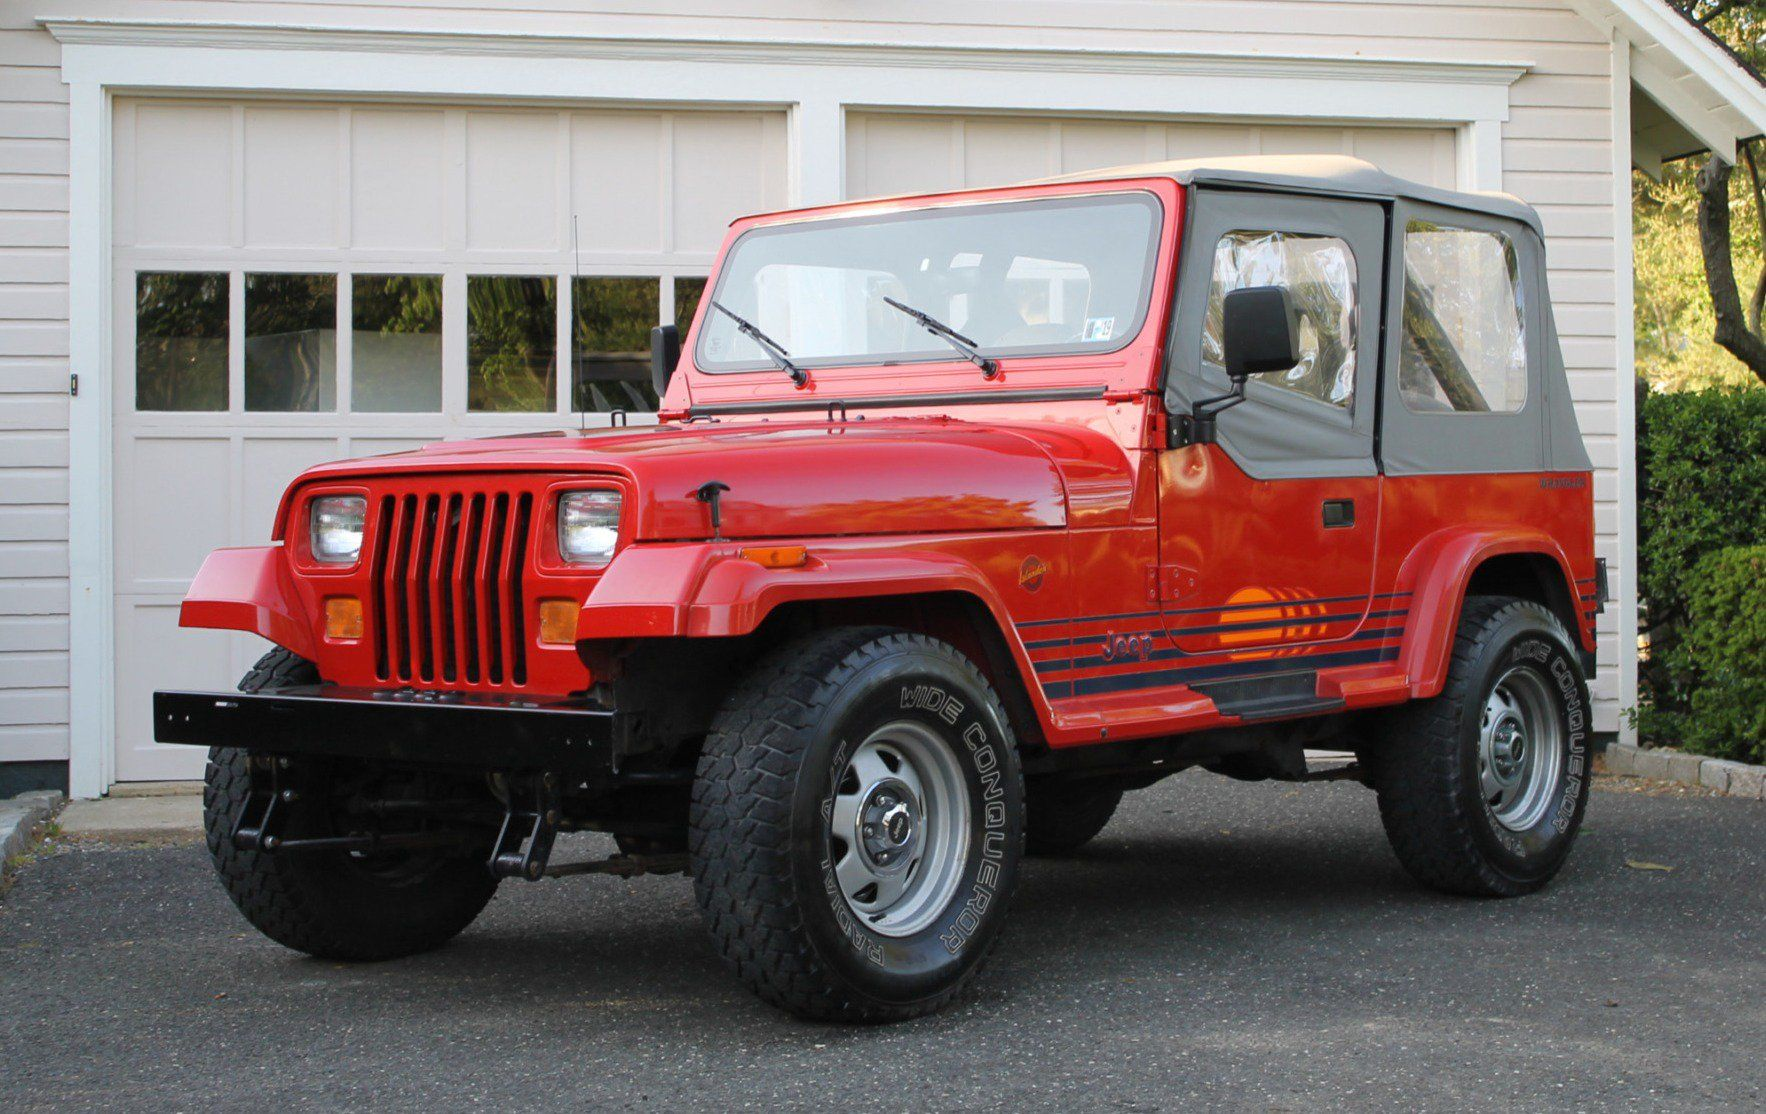 Https Pbs Twimg Com Media D85cpxnwwaif6jp Format Jpg Name Large In 2020 Jeep Wrangler Yj